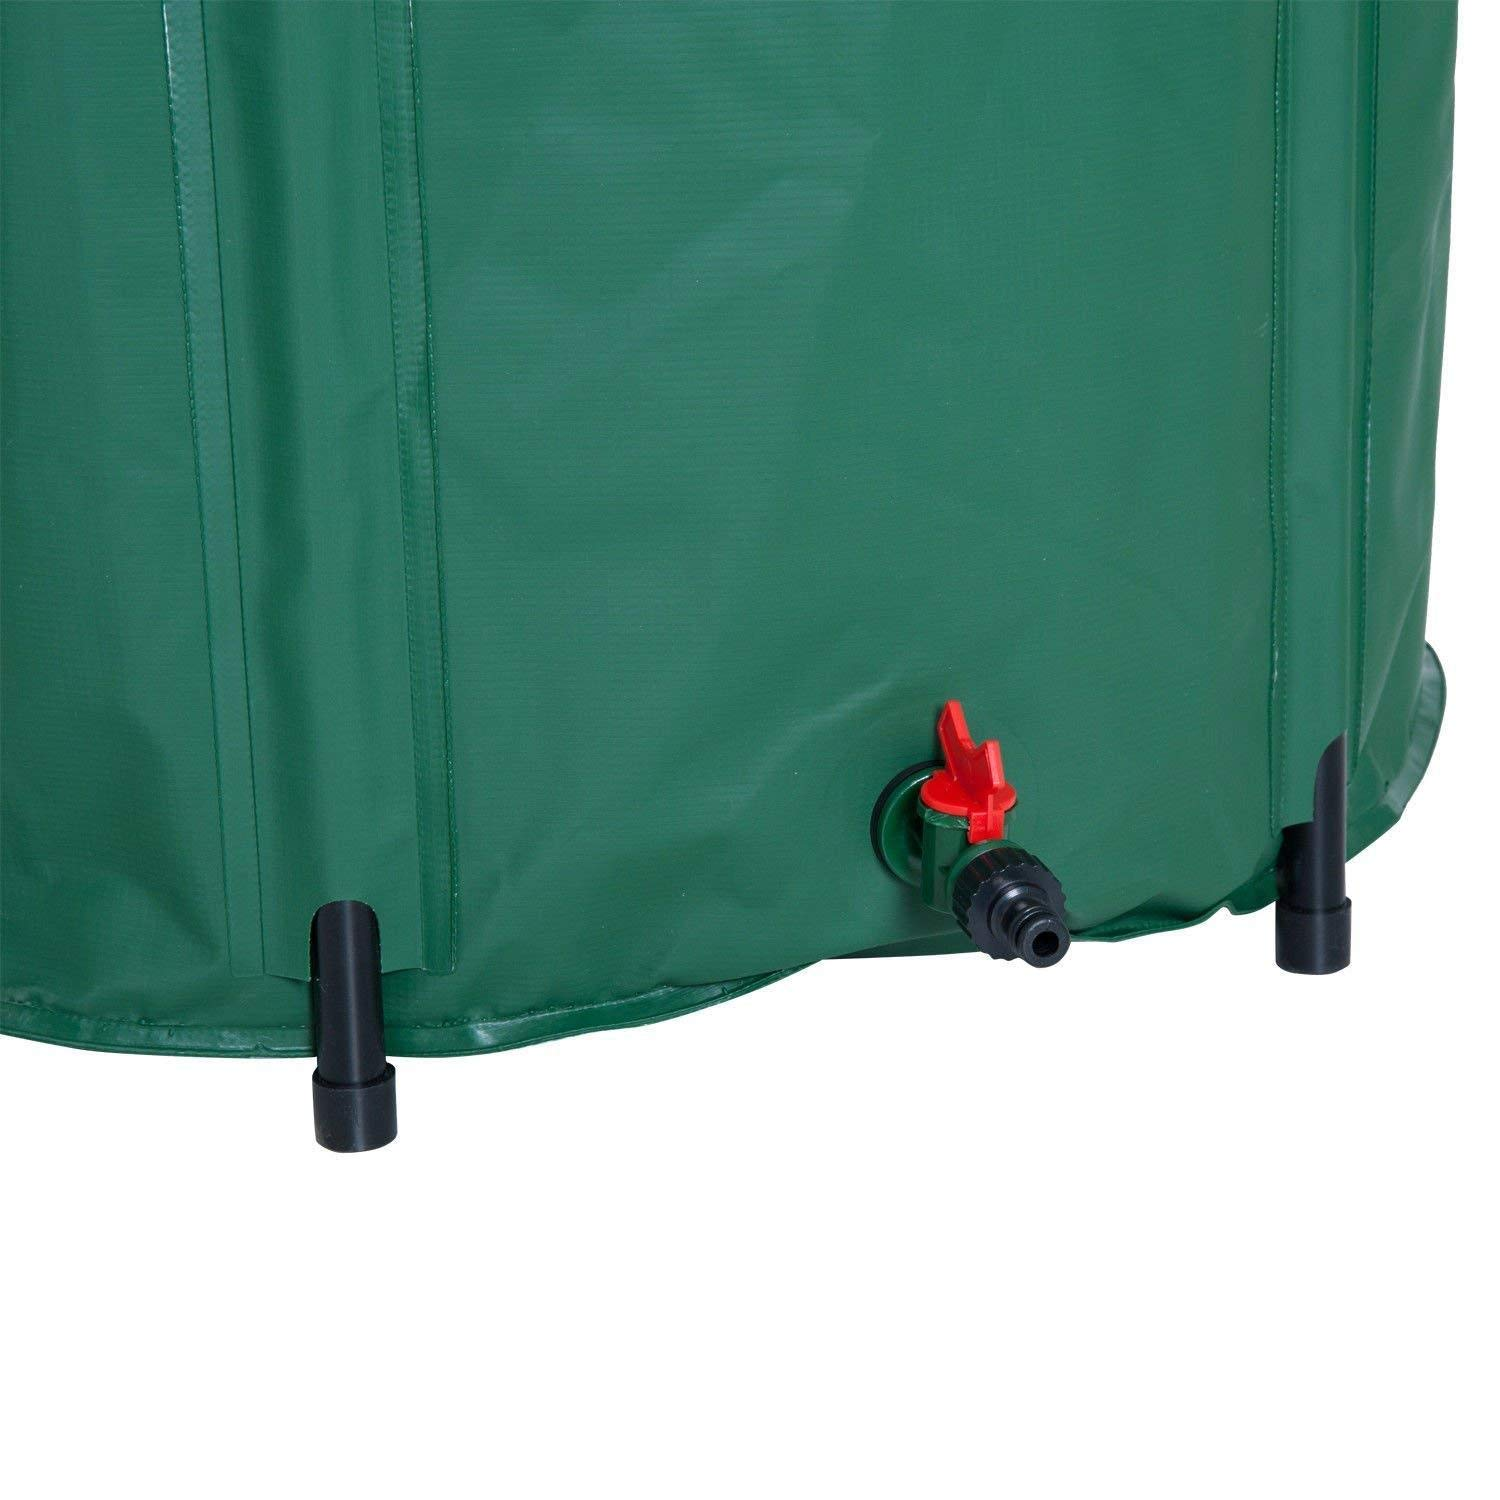 F.S.M. New 100L 225L 300L Outdoor Foldable Water Butt Bucket PVC Compressible Rain Barrel for Shower Bathing - M by F.S.M.